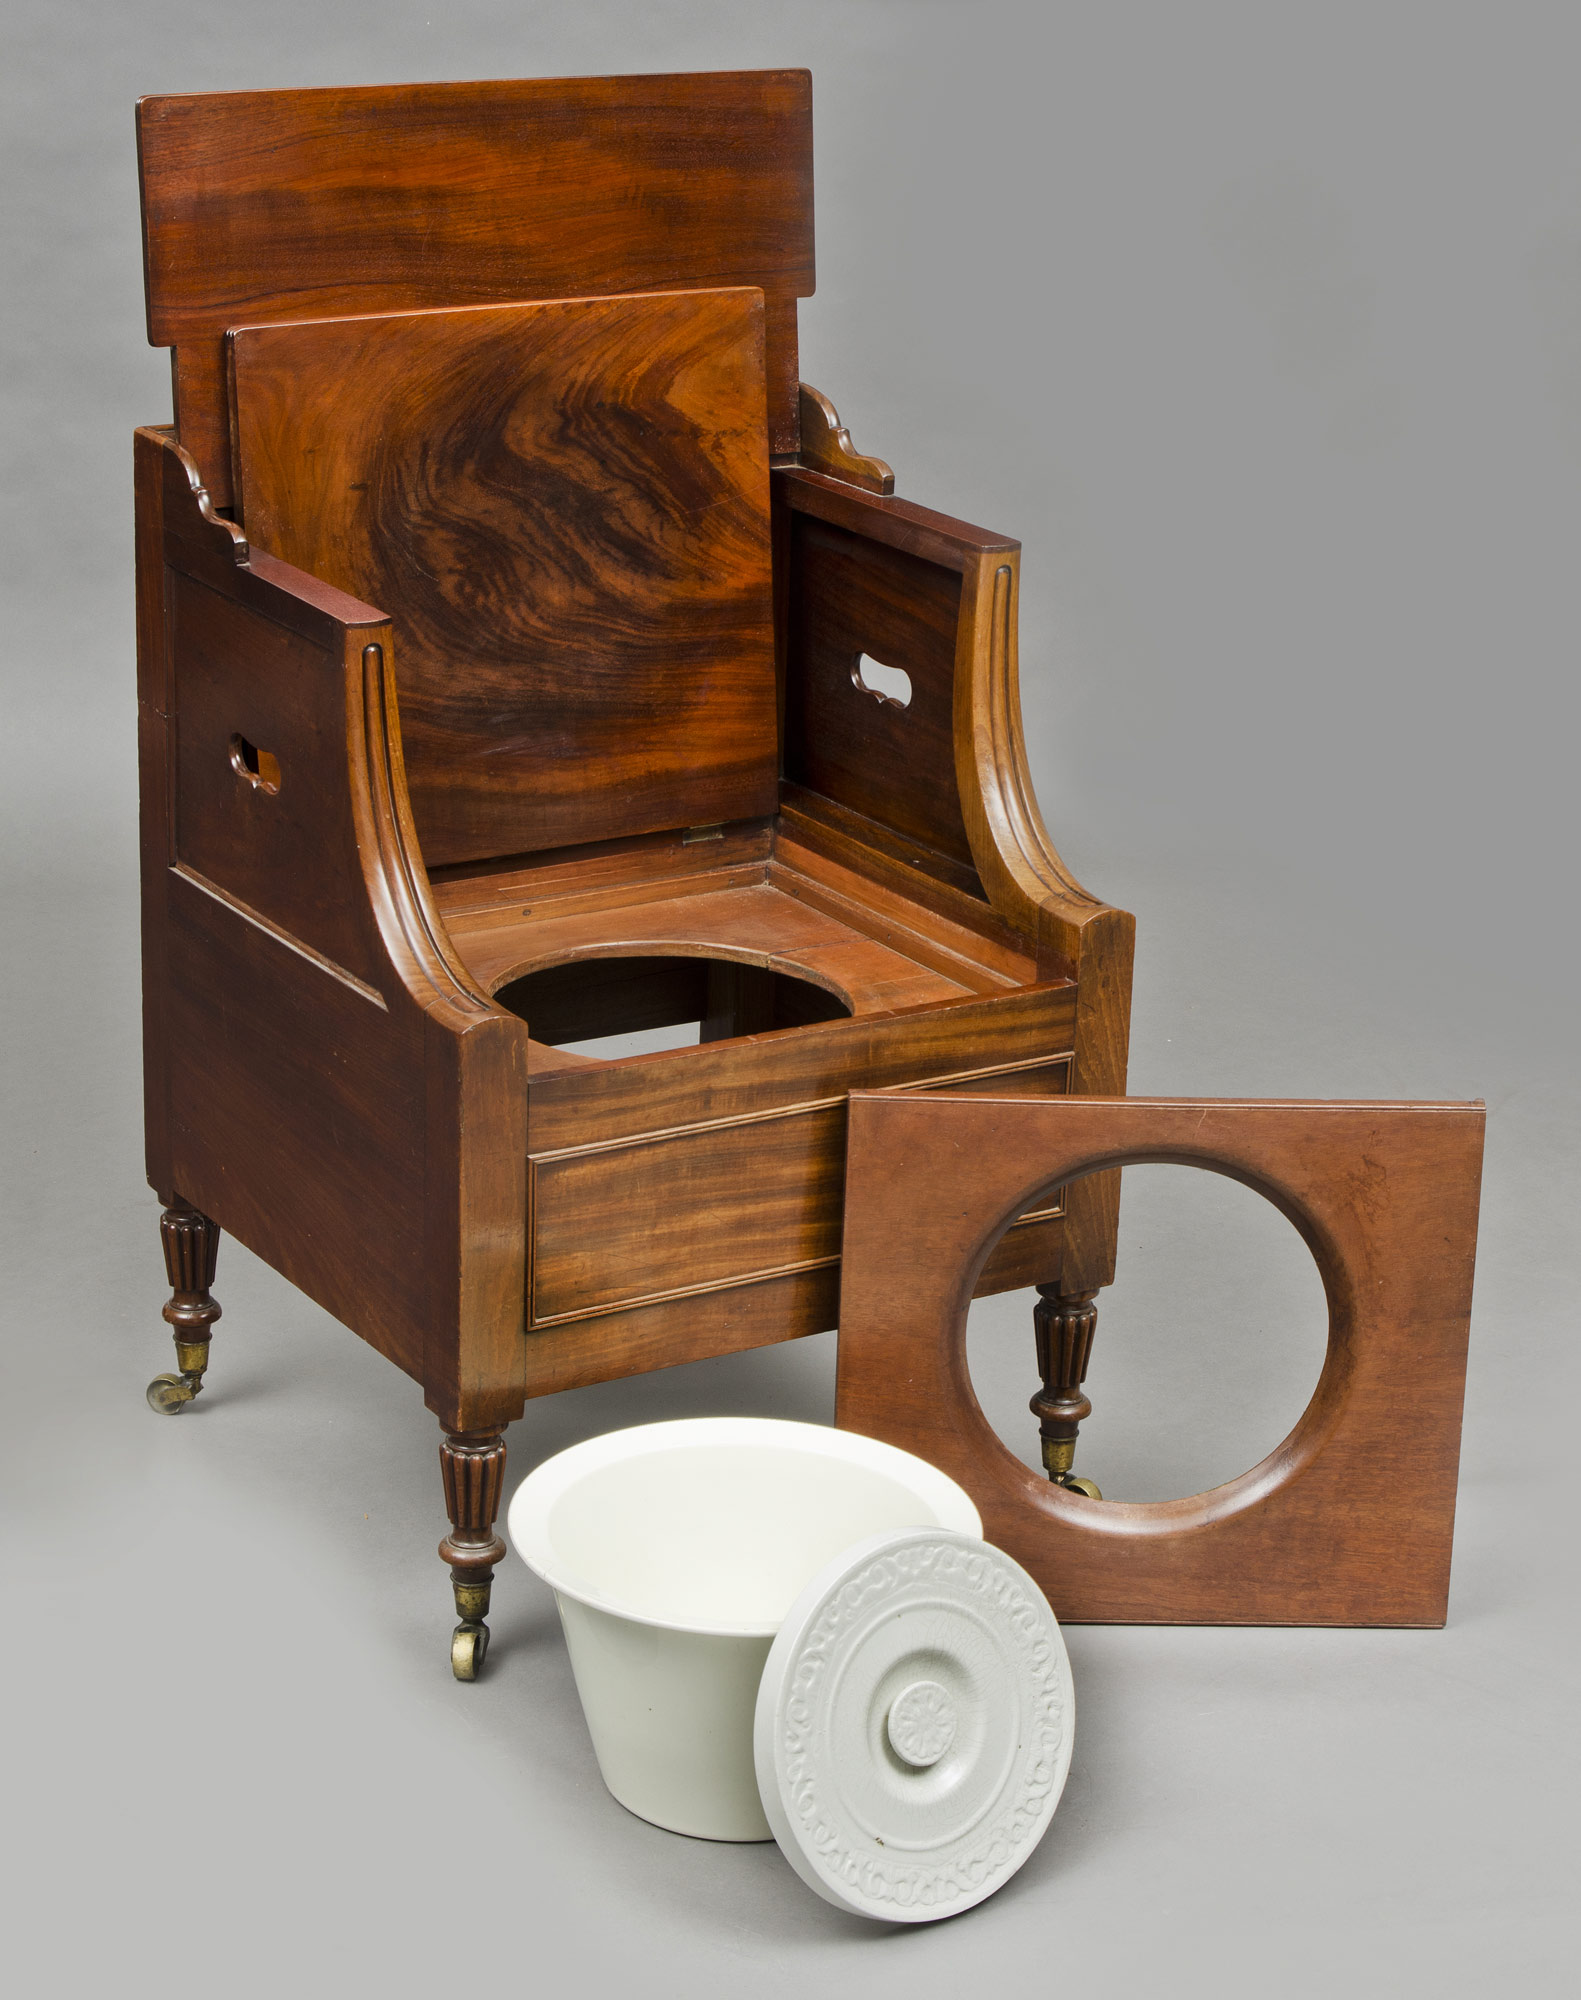 antique commode chair ergonomic for si joint pain commodes georgian mahogany lancashire